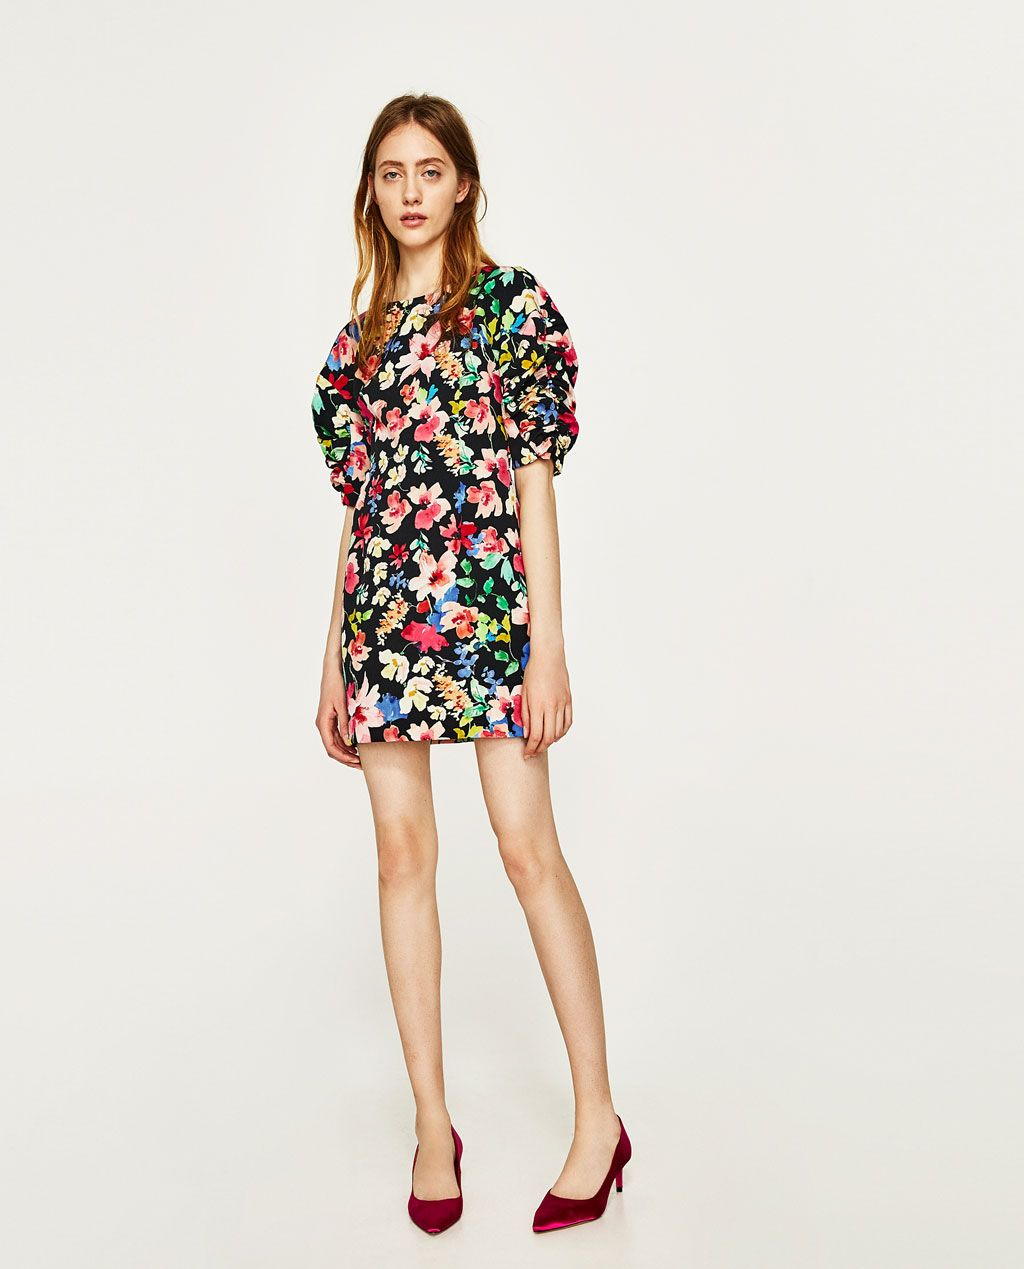 Mujer Mujer Zara Flores Vestido Mujer Flores Flores Vestido Vestido Zara Zara q16S86